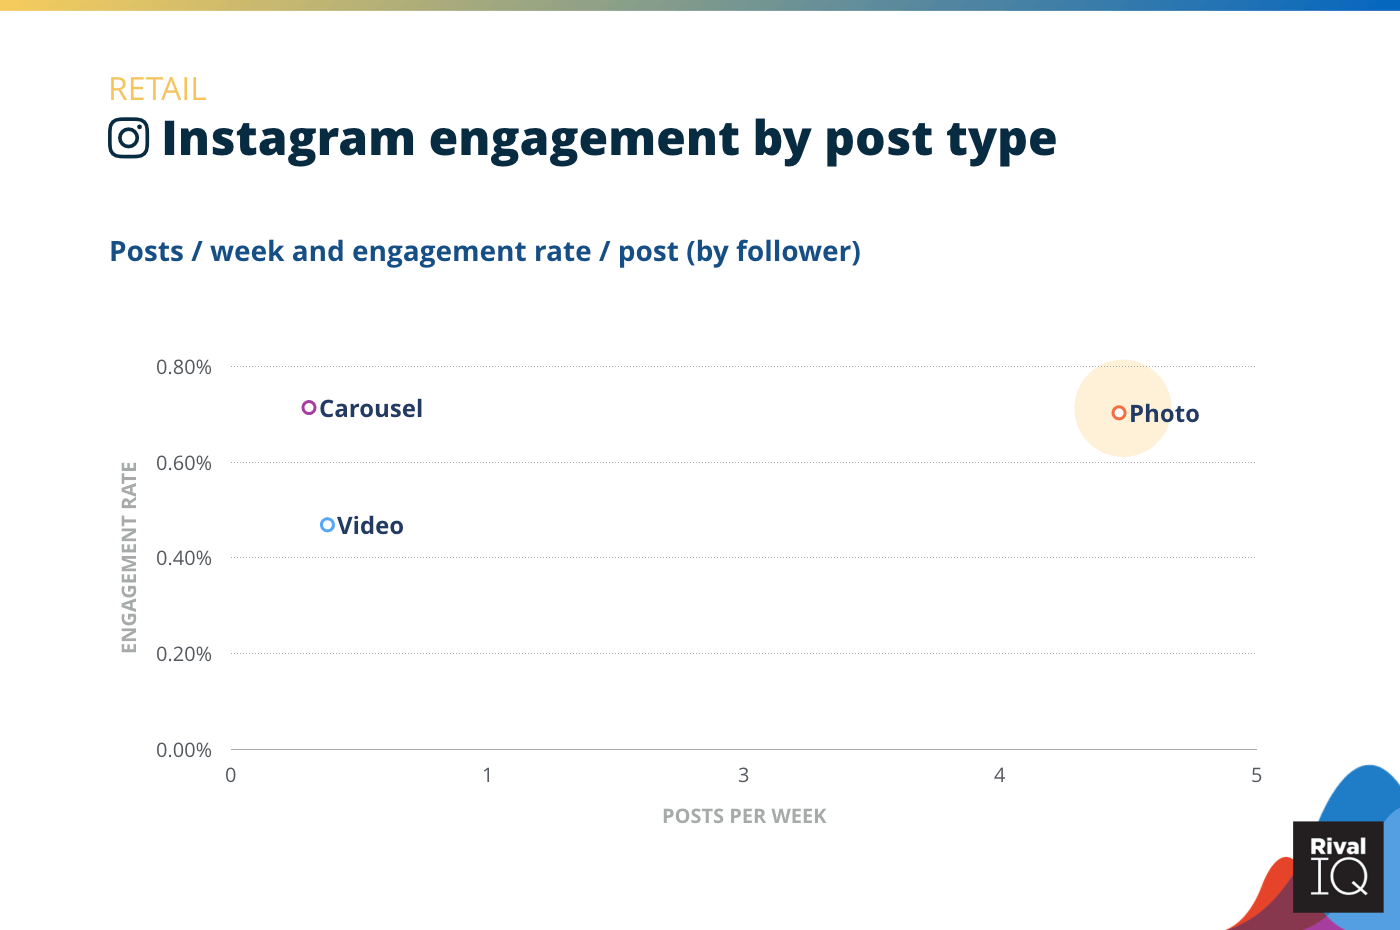 Chart of Instagram posts per week and engagement rate by post type, Retail